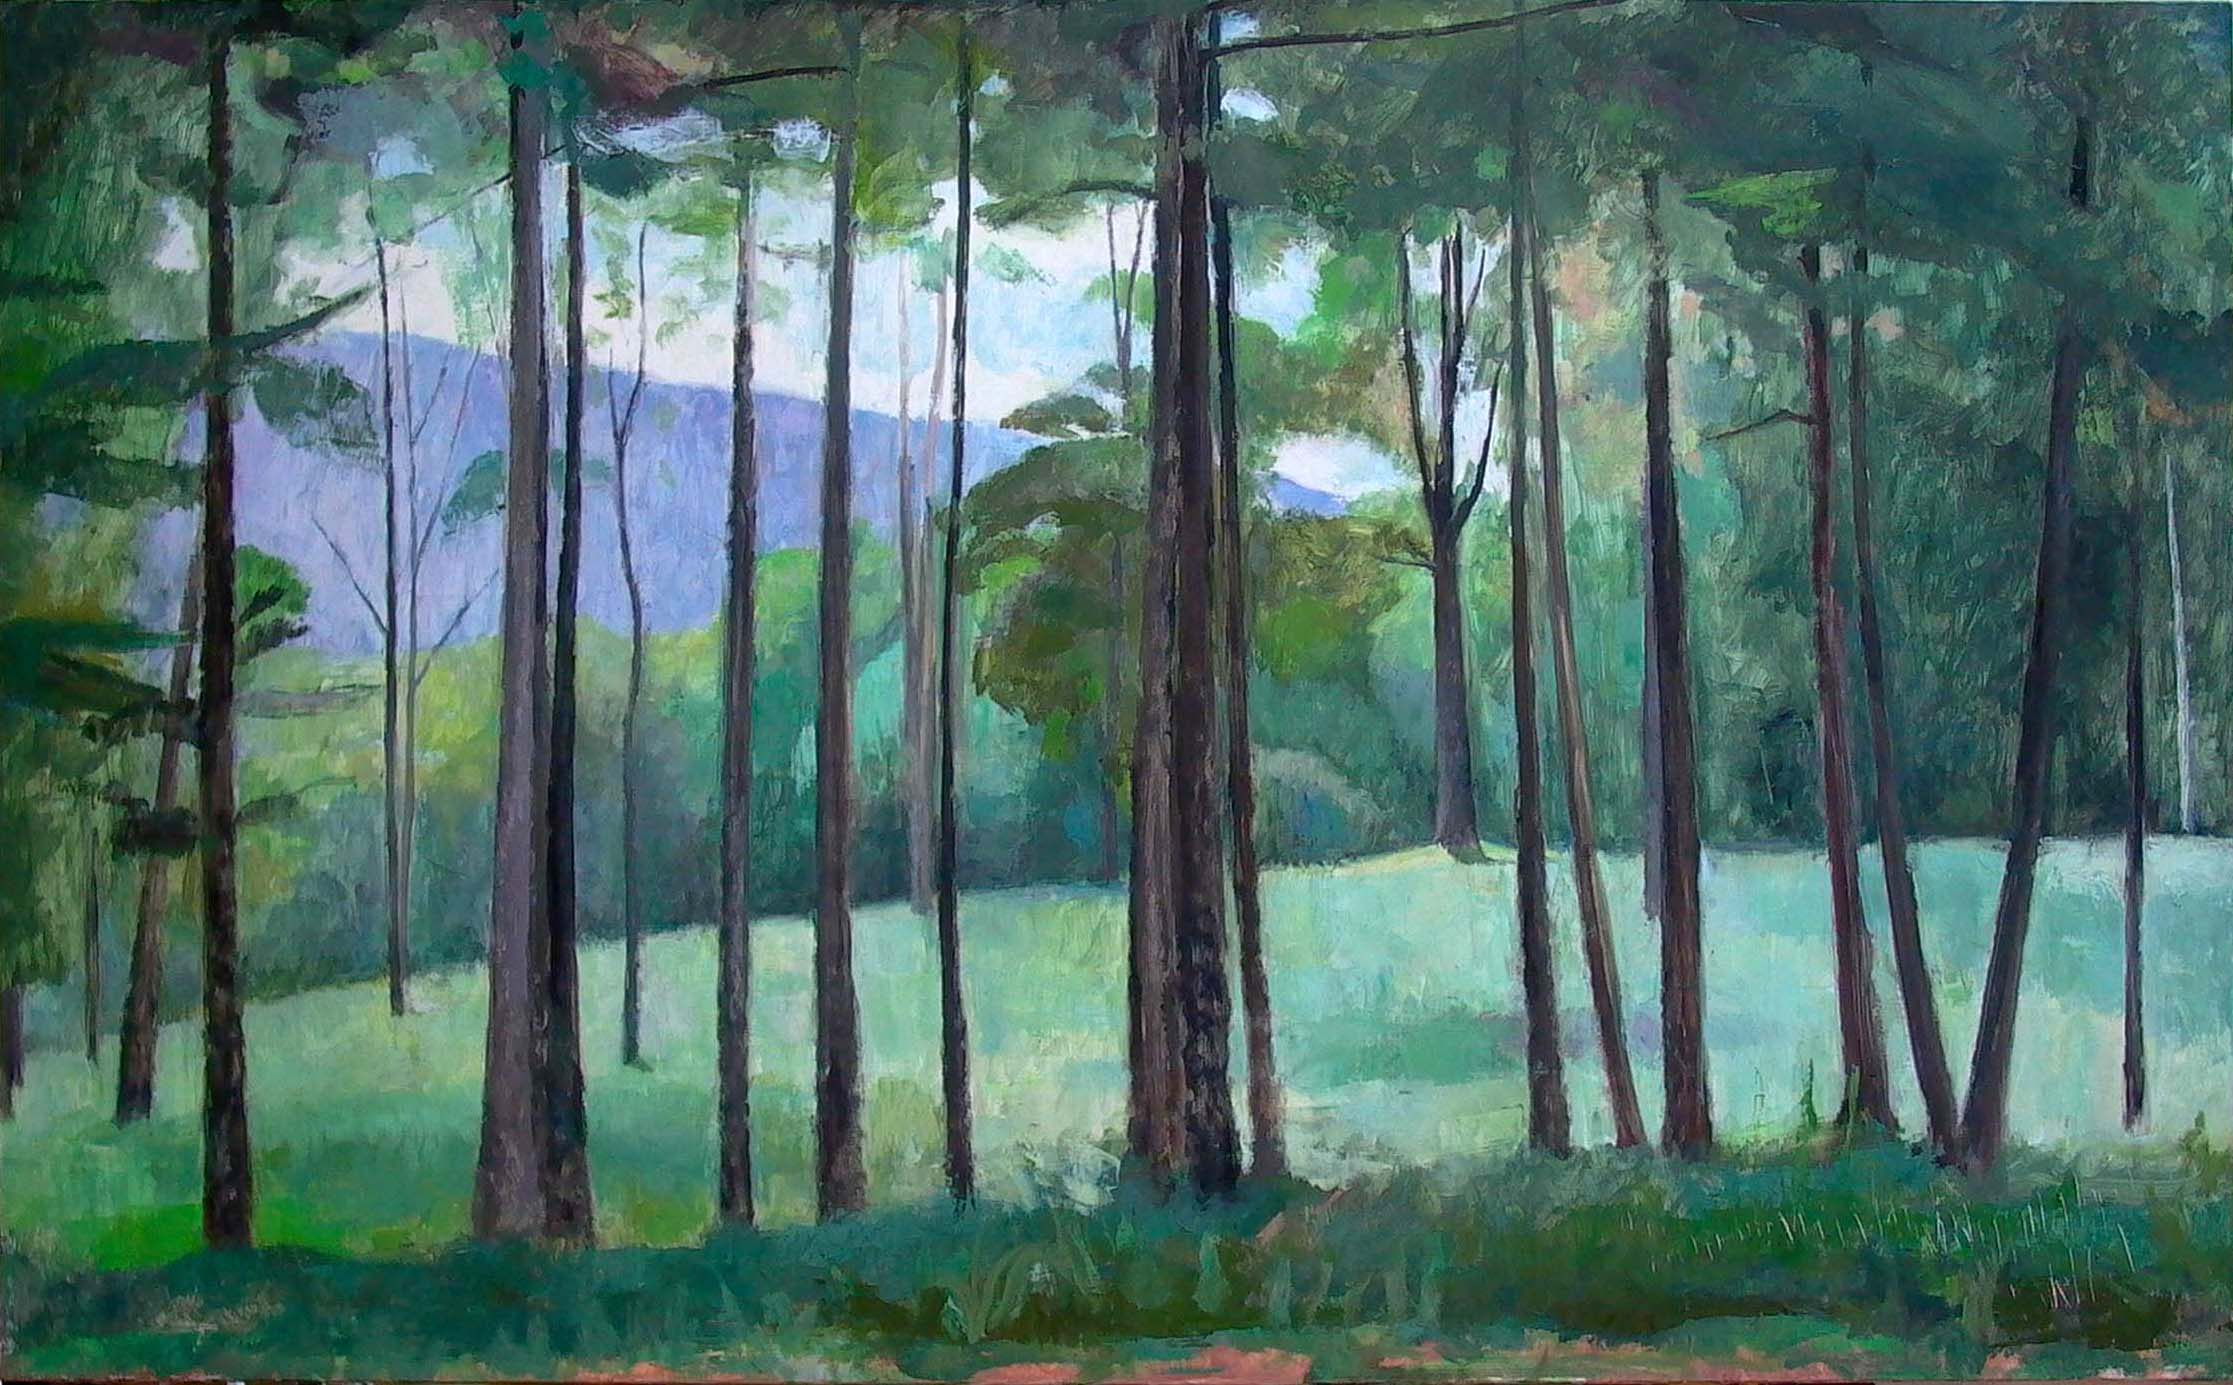 Row of Trees, Tyringham, oil on linen, 36 x 60 inches